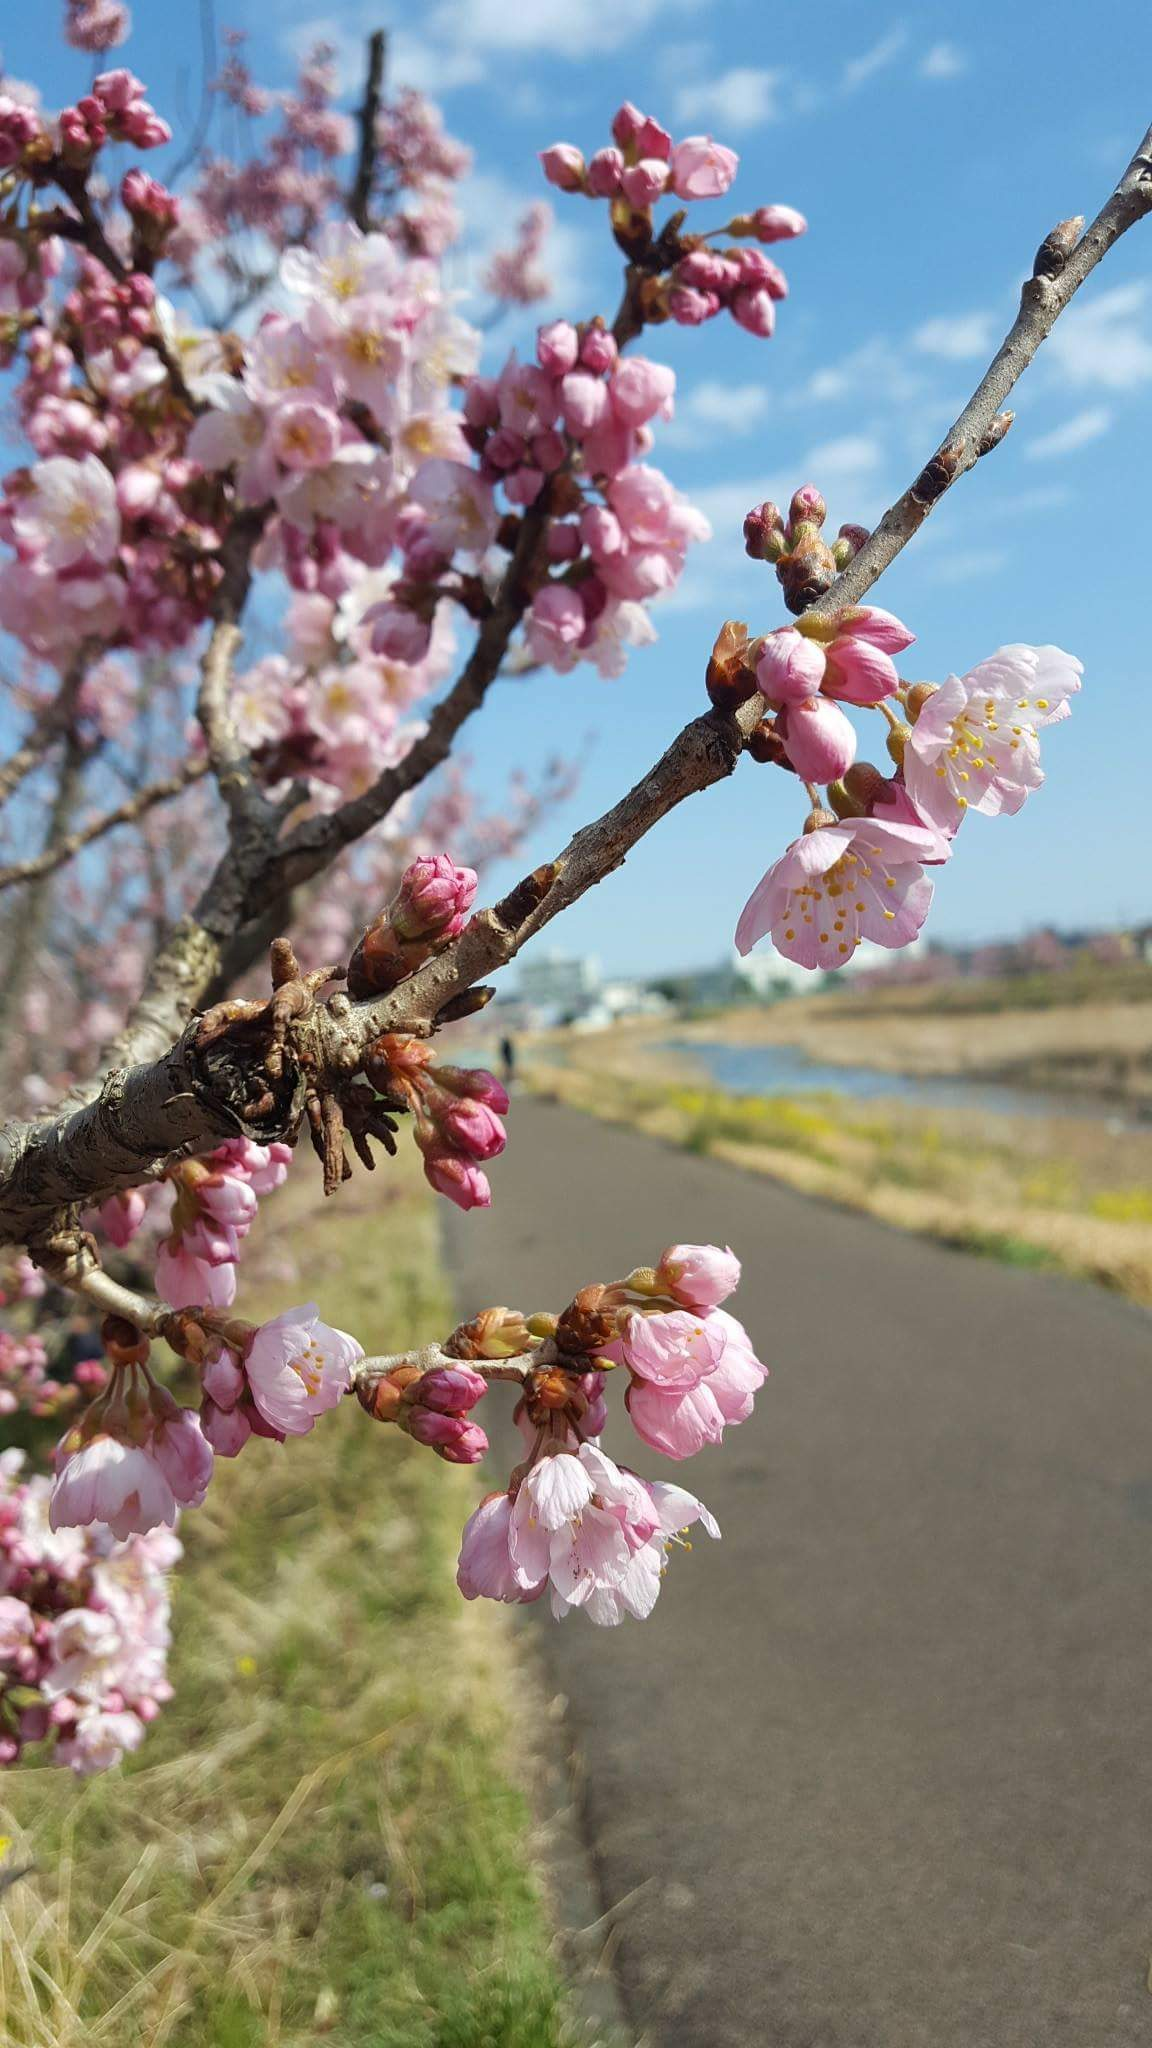 Riverside blossoms – Anday judith